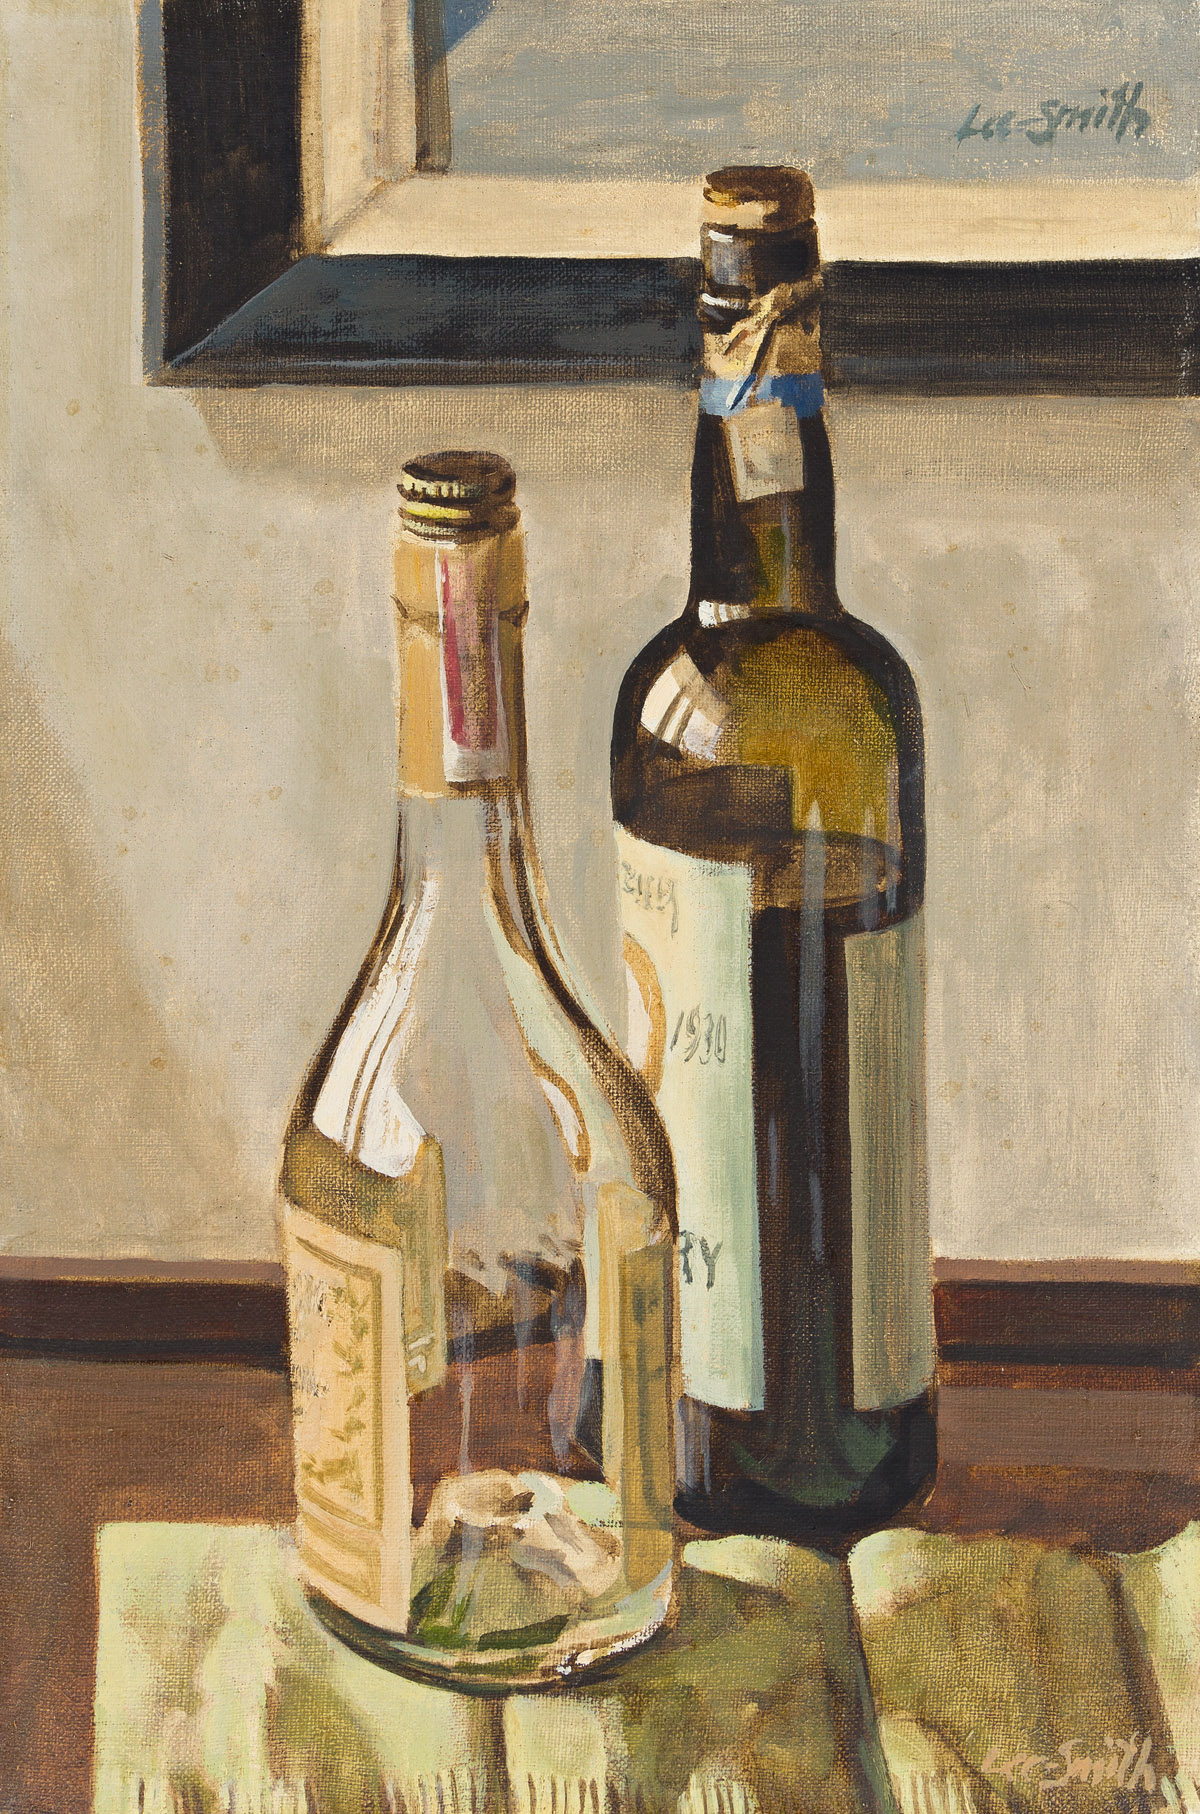 HUGHIE LEE-SMITH (1915 - 1999) Untitled (Still Life with Two Wine Bottles).